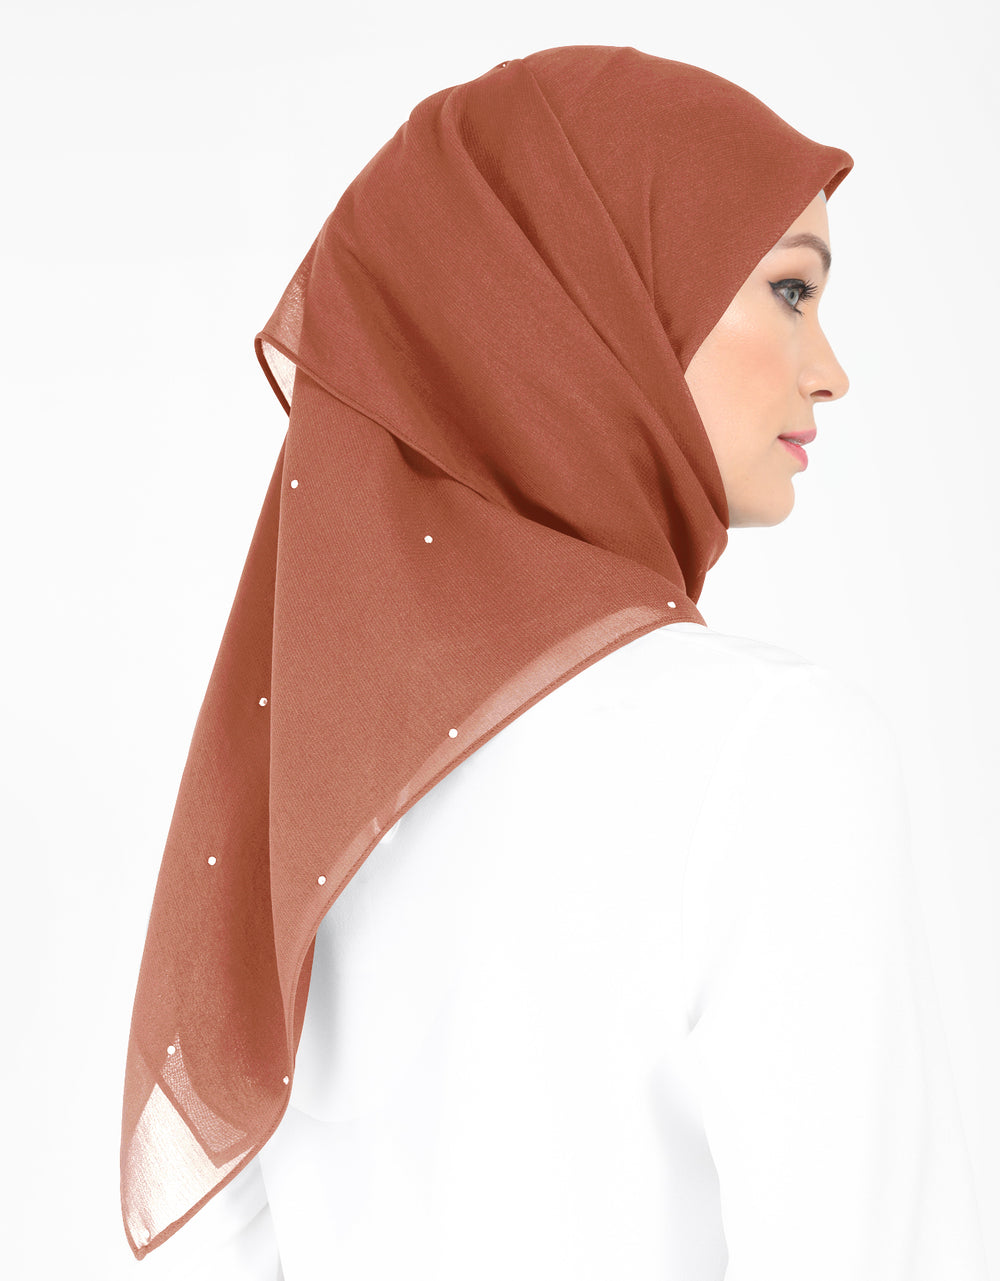 Chiffon Square Bawal With Stone Col. 57 (Dark Salmon)